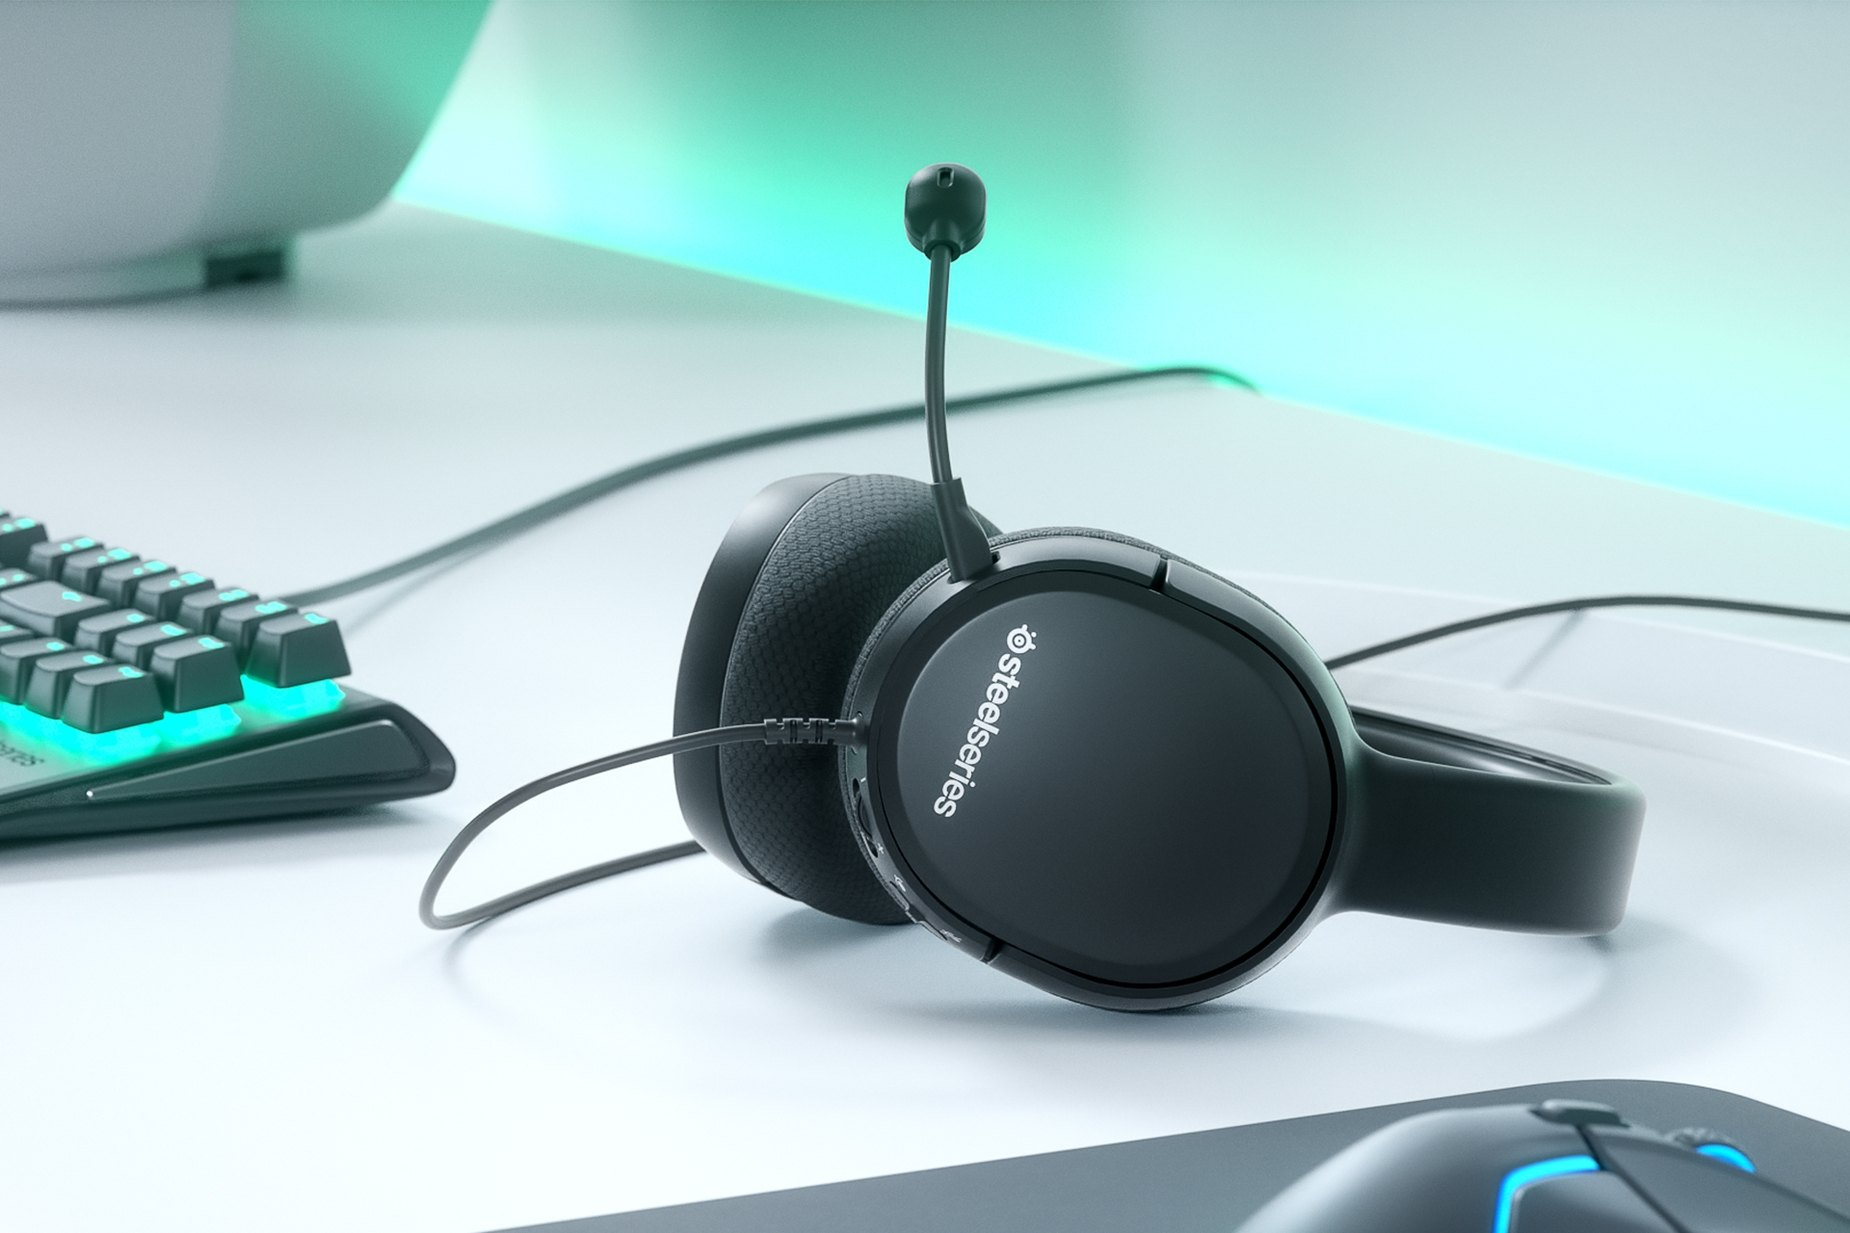 Arctis 1 for Xbox gaming headset on table with Xbox game console next to it.